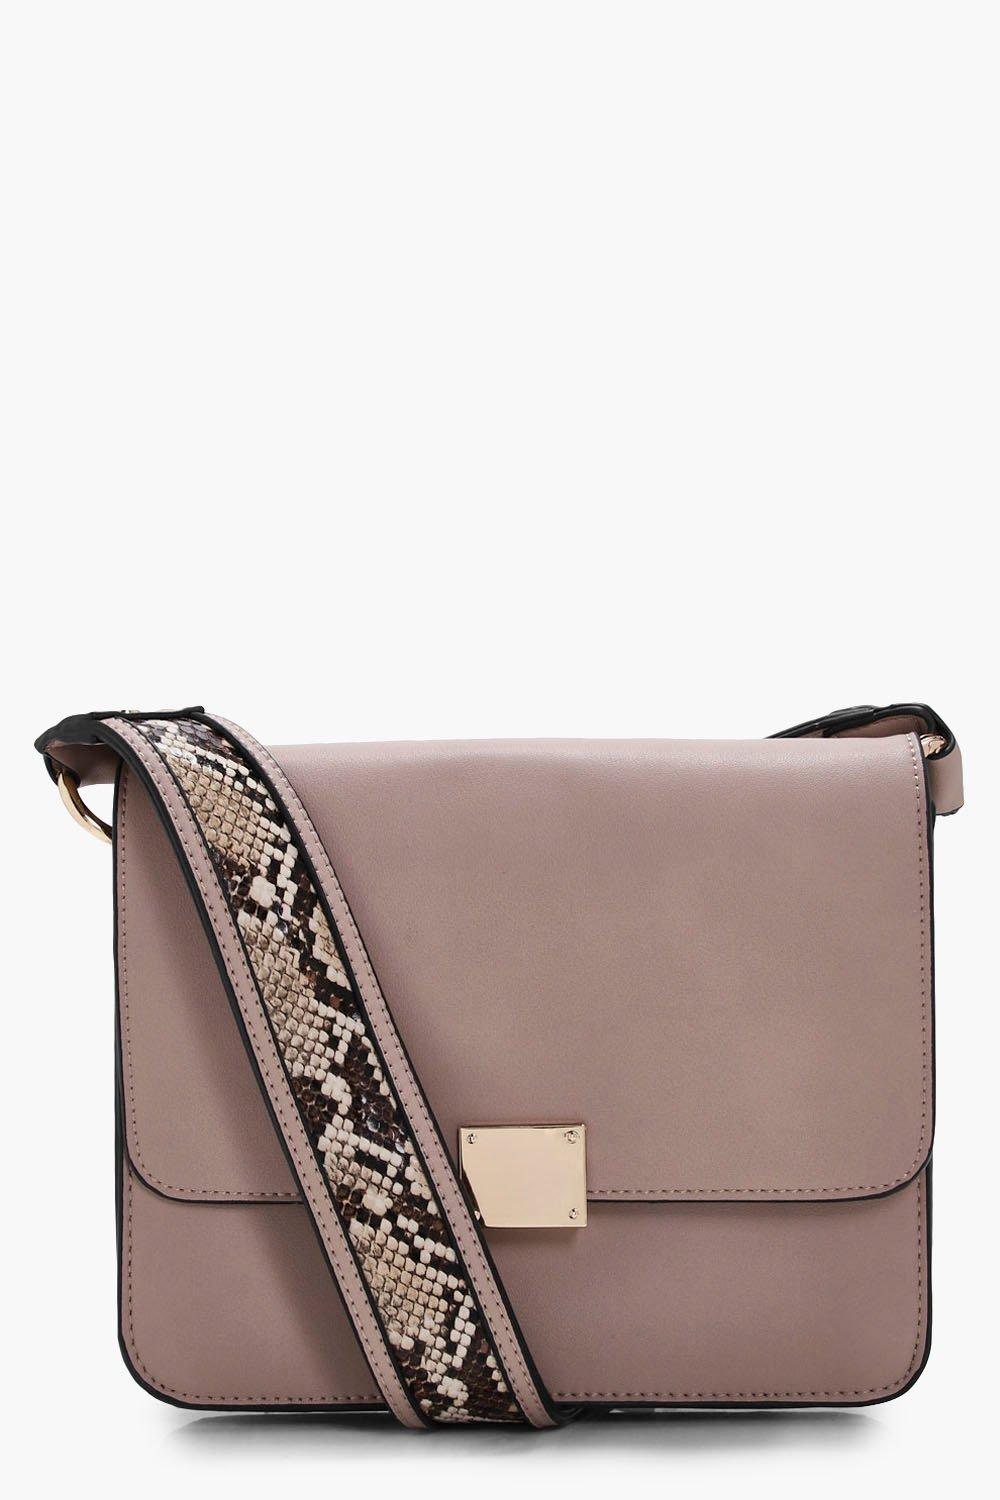 Snake Strap Detail Cross Body Bag - taupe - Emily